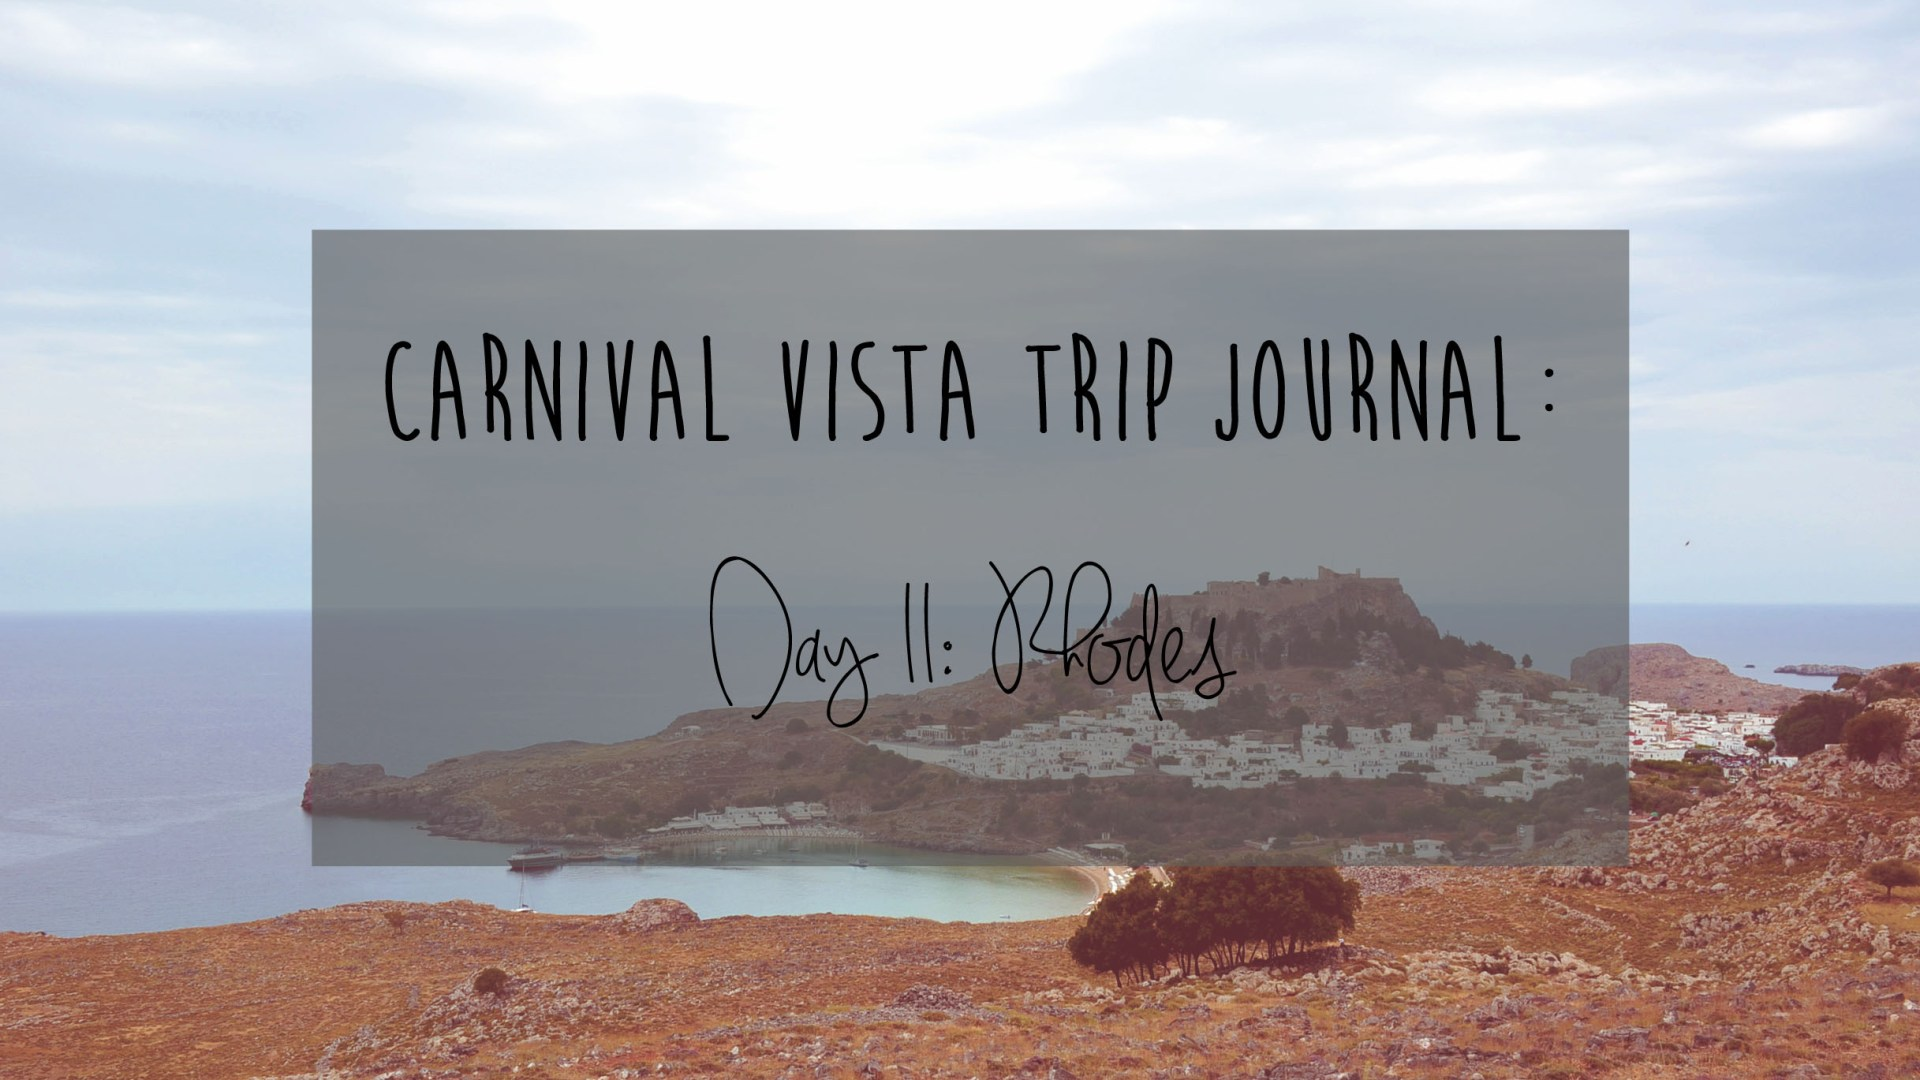 Carnival Vista Review: Day 11 – Rhodes